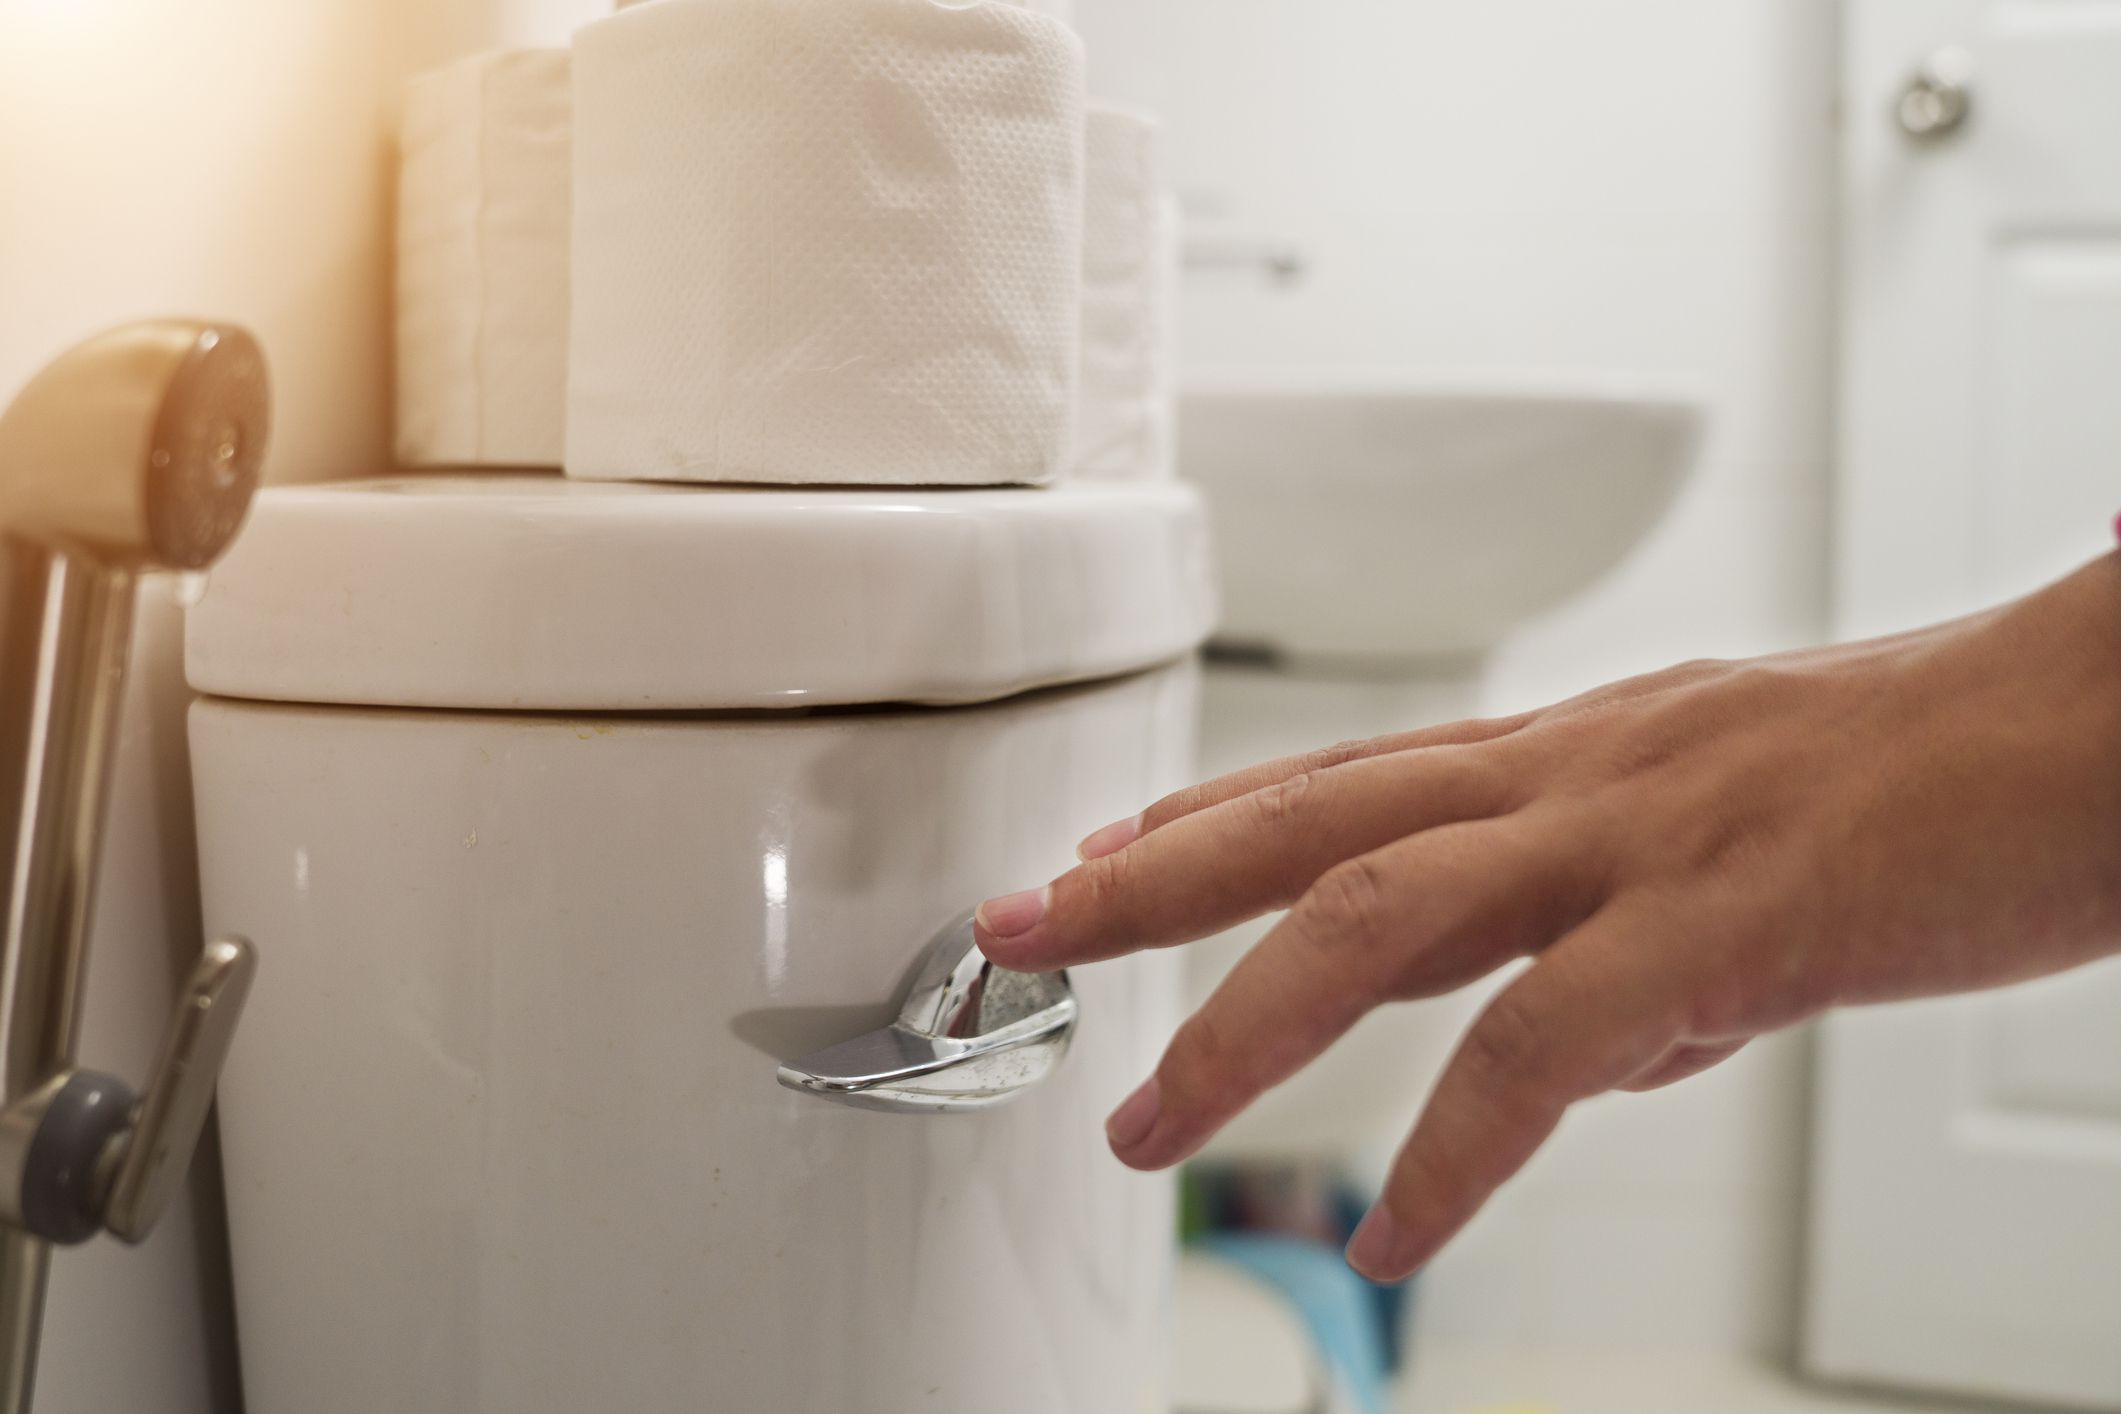 A white hand flushing a toilet with toilet paper sitting on top of it.